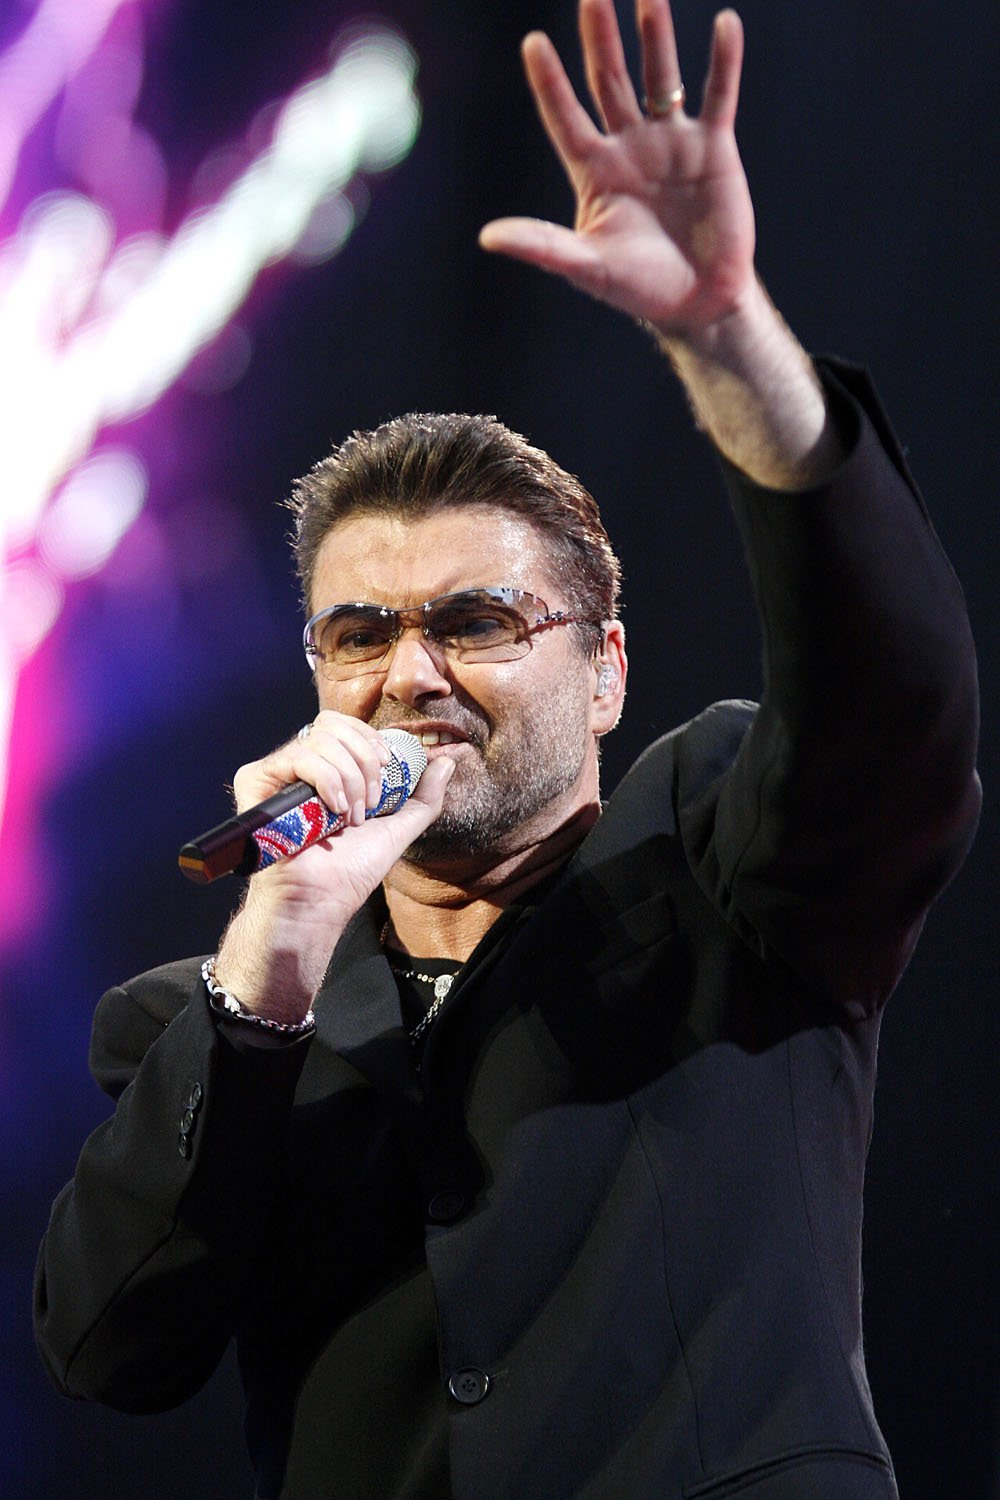 George Michael @ Plymouth Home Park 19th June 2007 - www.leapimages.co.uk